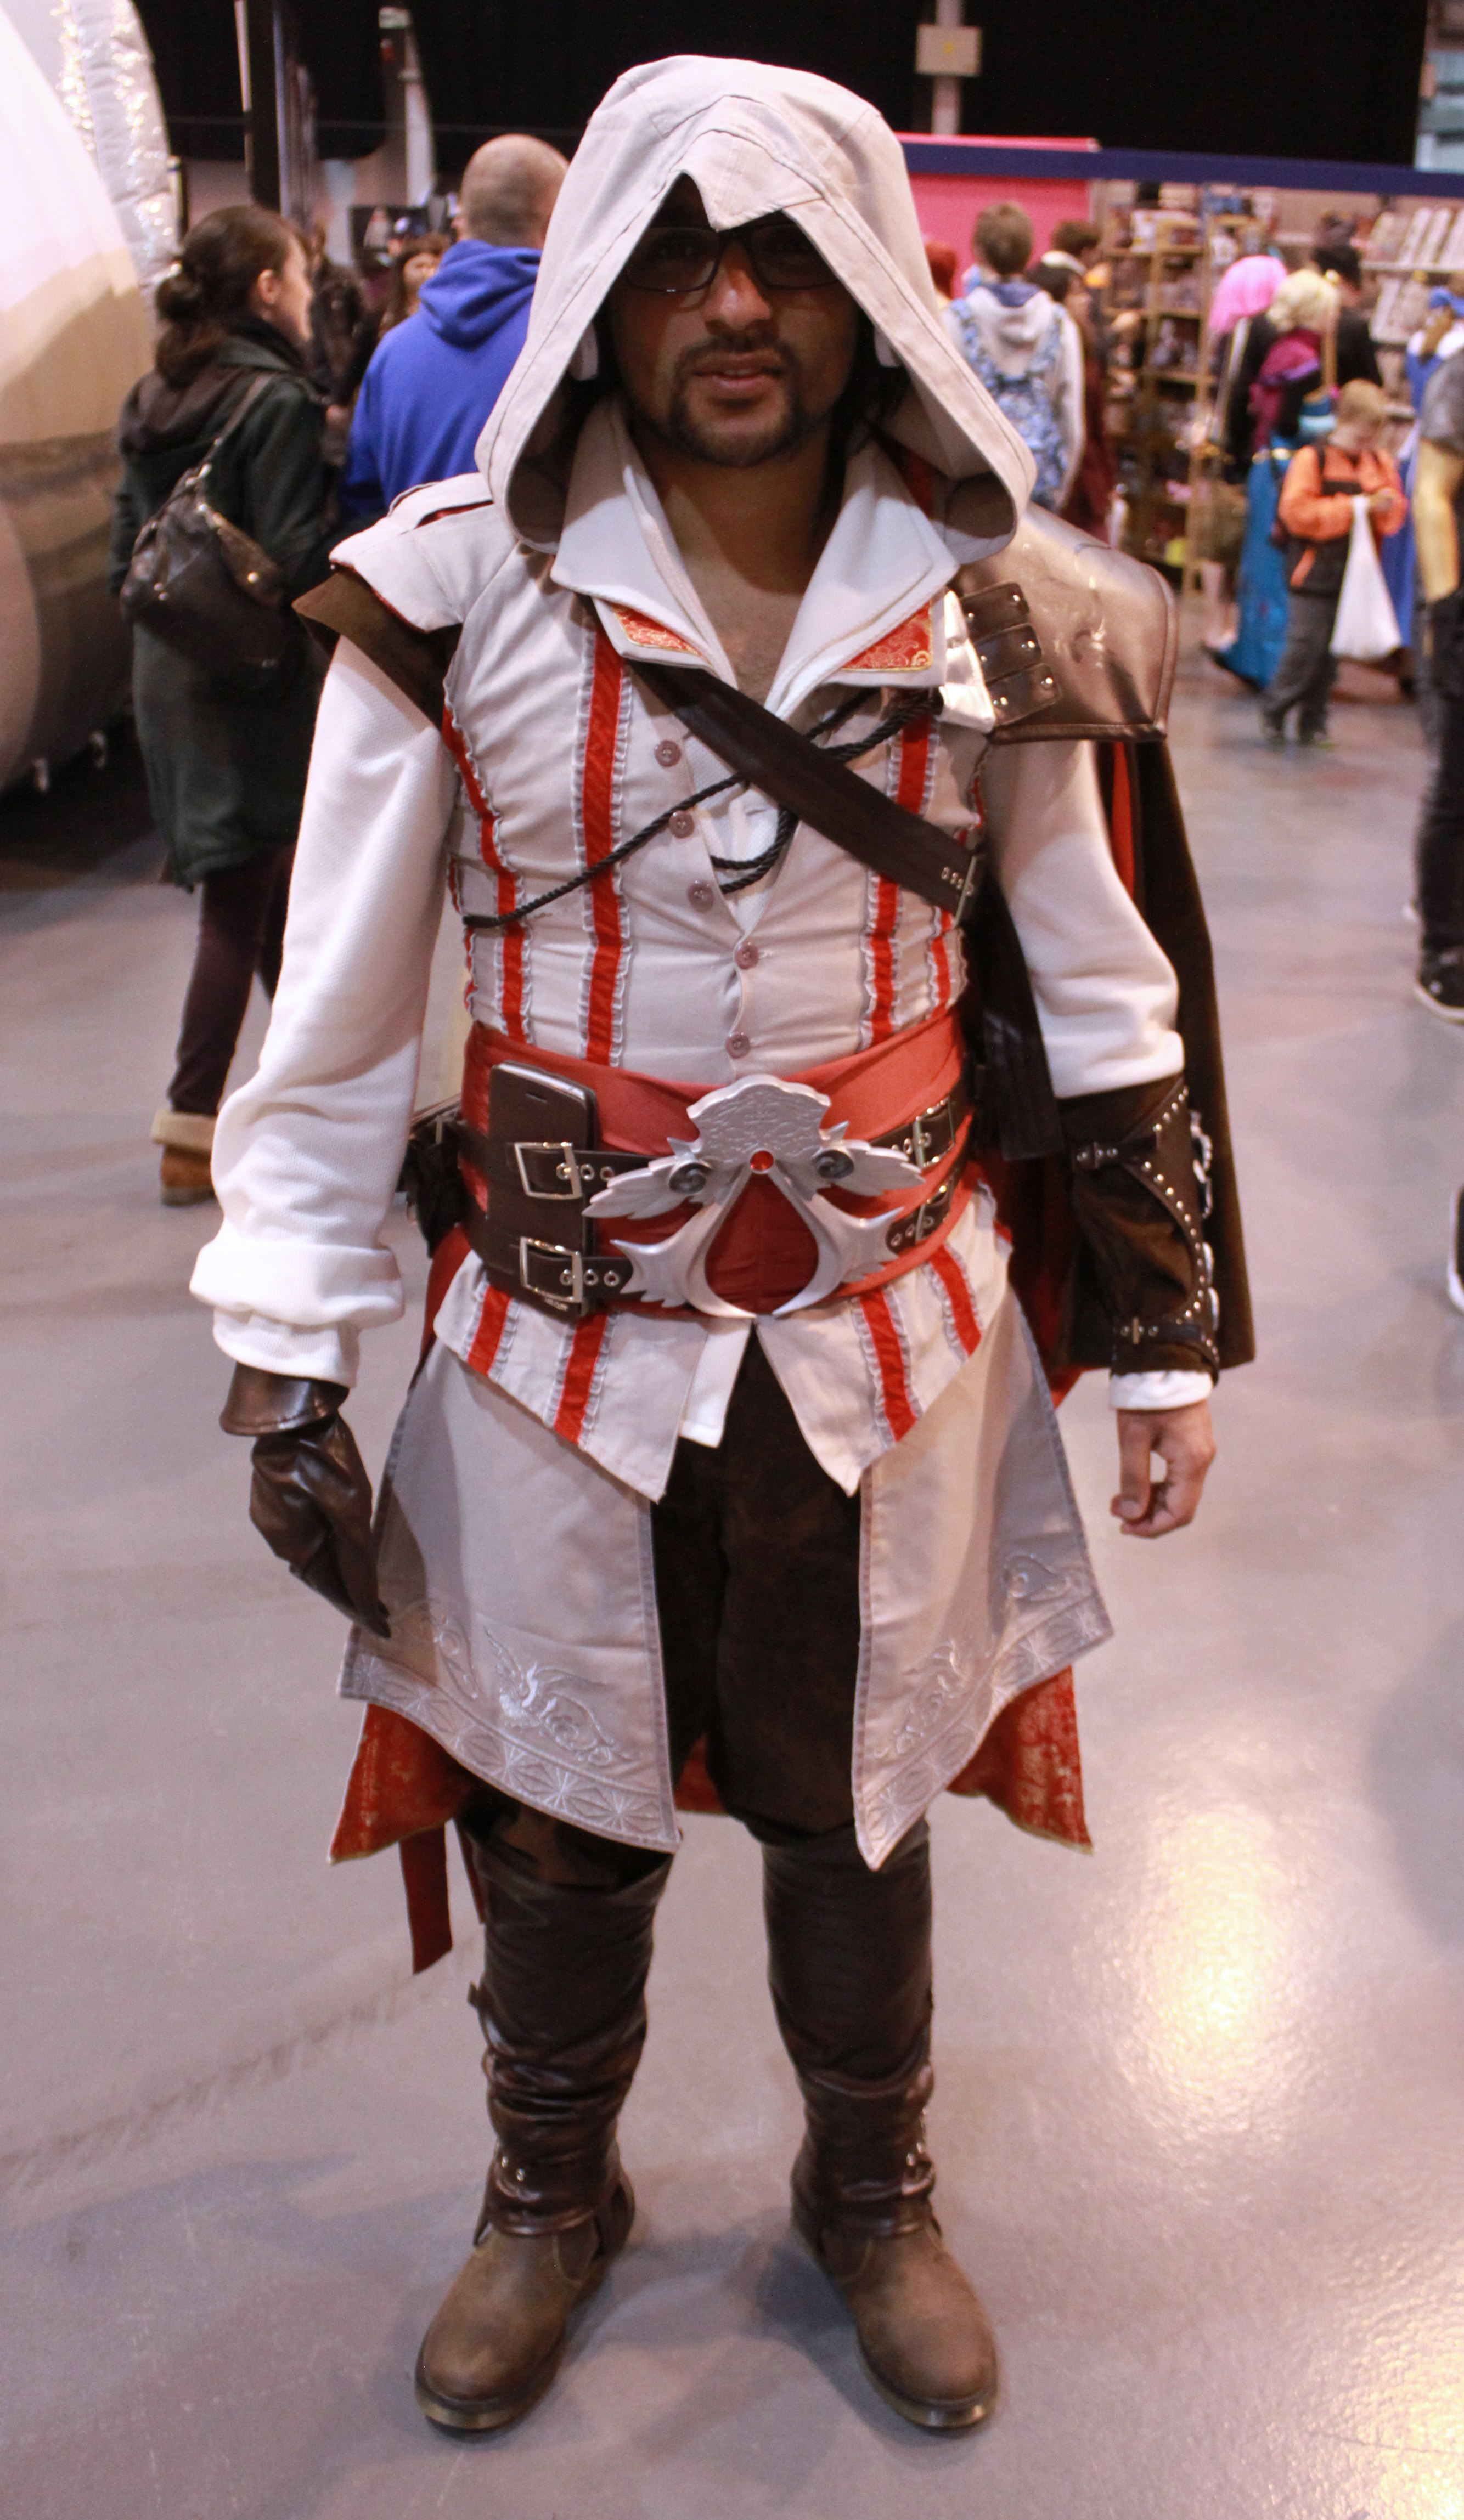 An assassin shows off his wears. MCM Midlands, Feb 2015